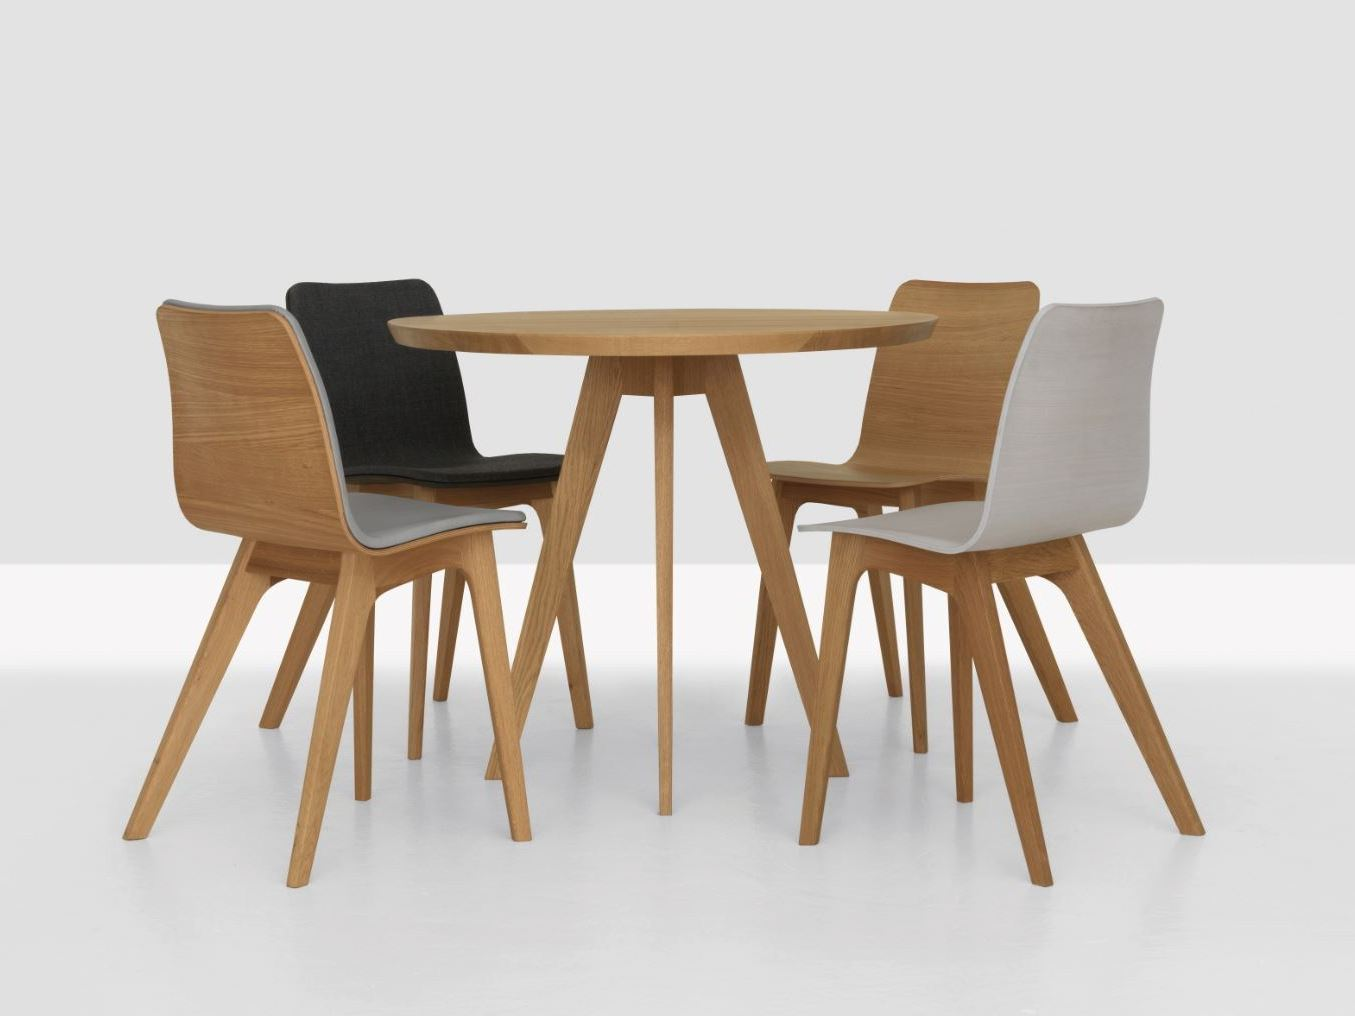 Cena round table by zeitraum design peter gaebelein for Table mosaic xl 6 chaises encastrables